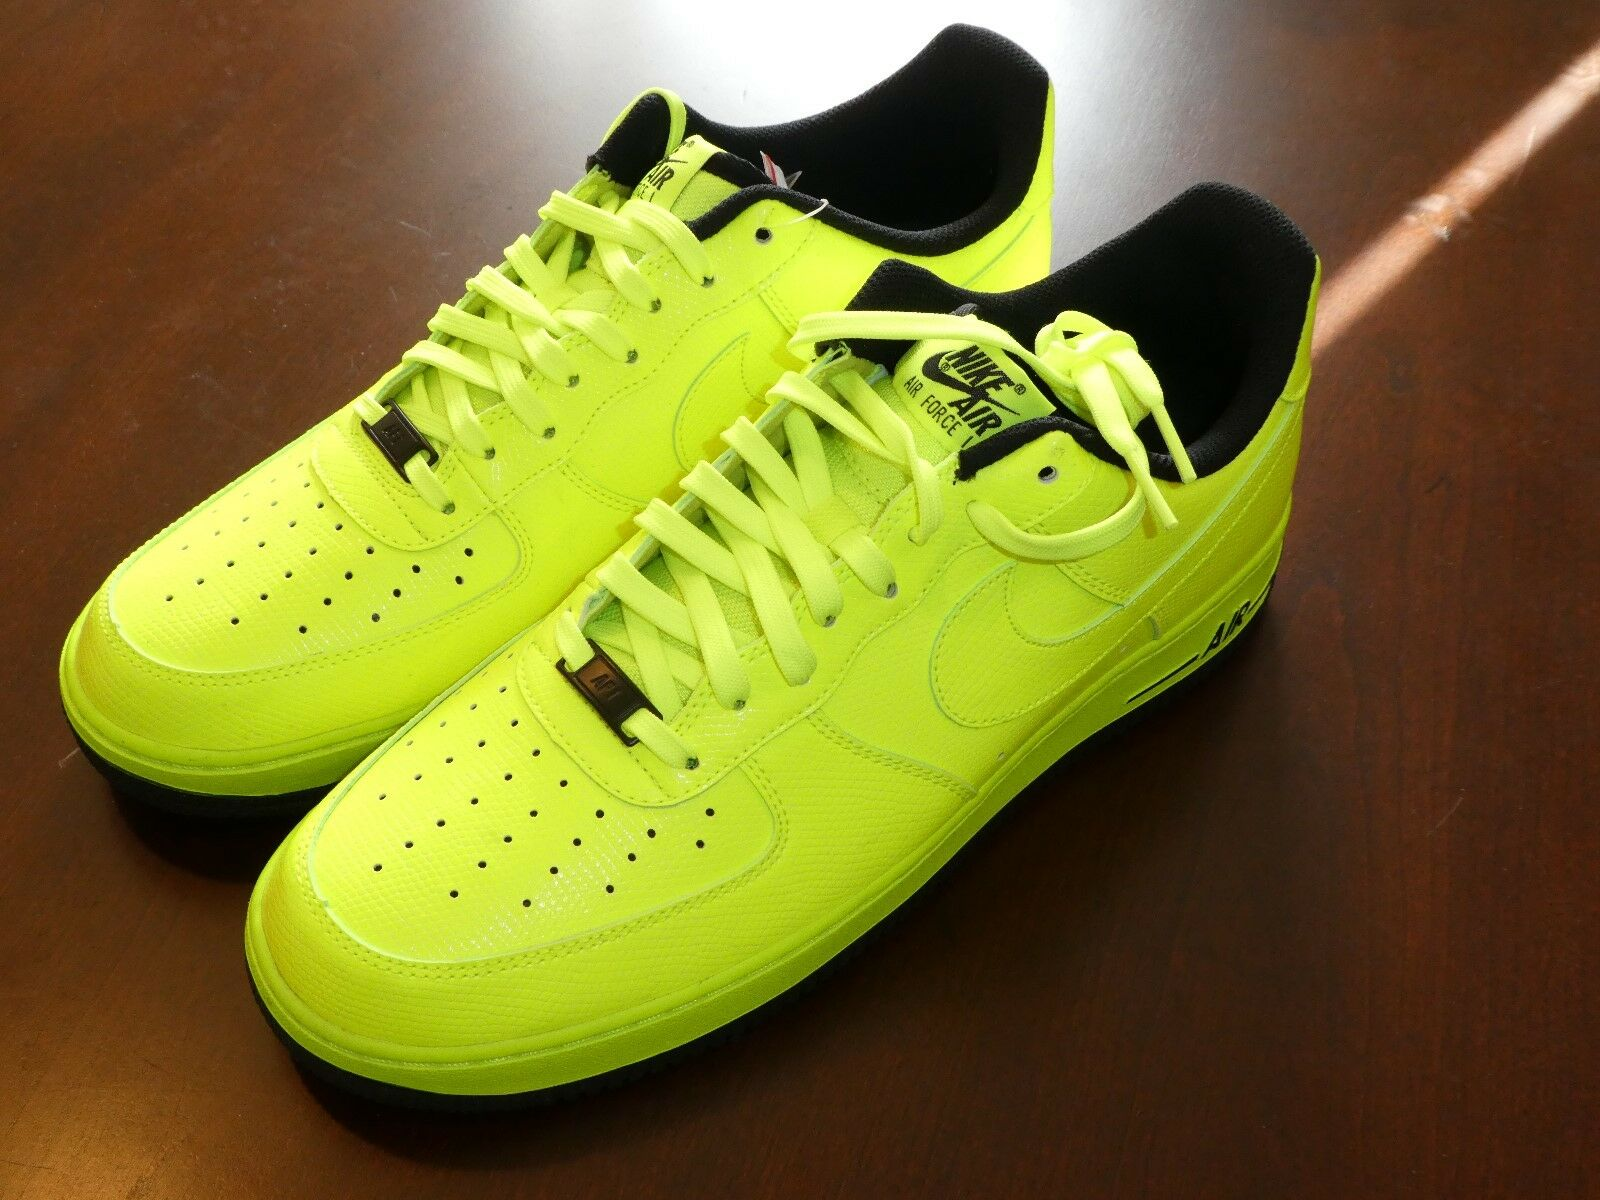 Nike Air Force 1 one shoes mens new 488298 703 Volt sneakers